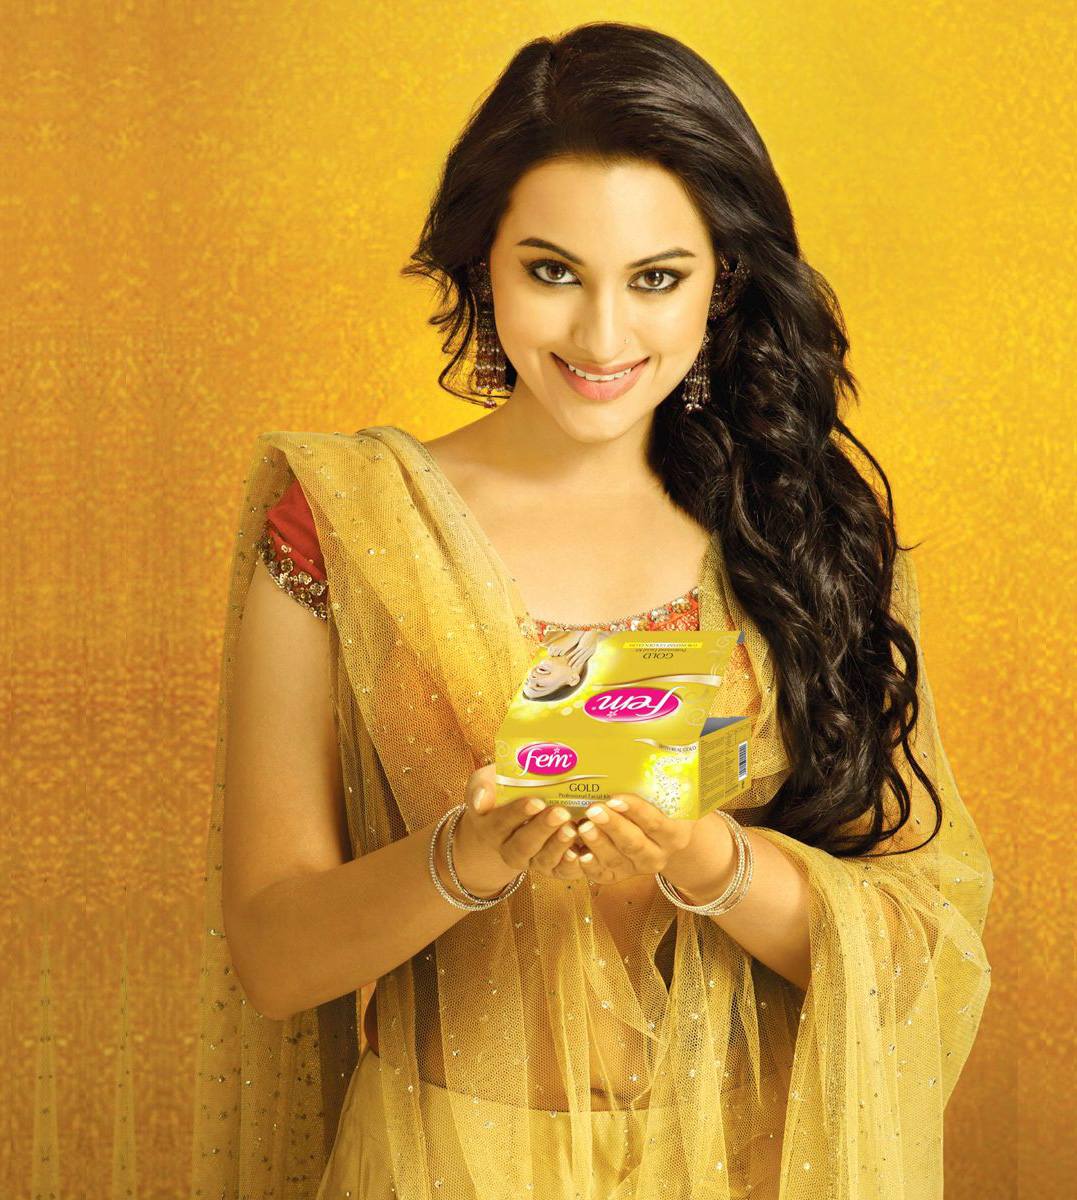 SONAKSHI SINHA IMAGES PICTURES PICS FREE HD DOWNLOAD